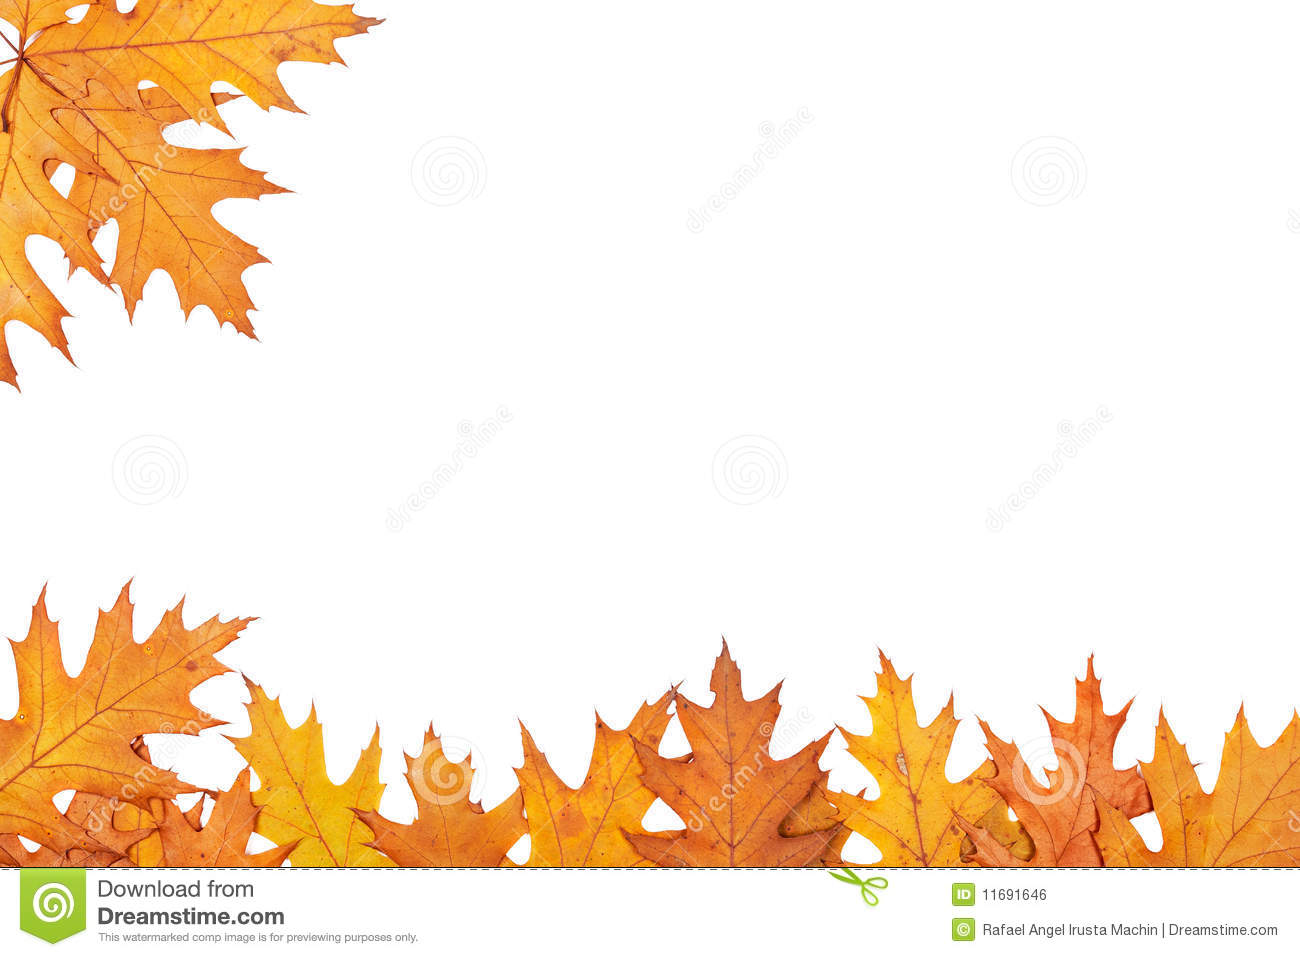 Free Fall Autumn Clip Art ..-Free Fall Autumn Clip Art ..-16